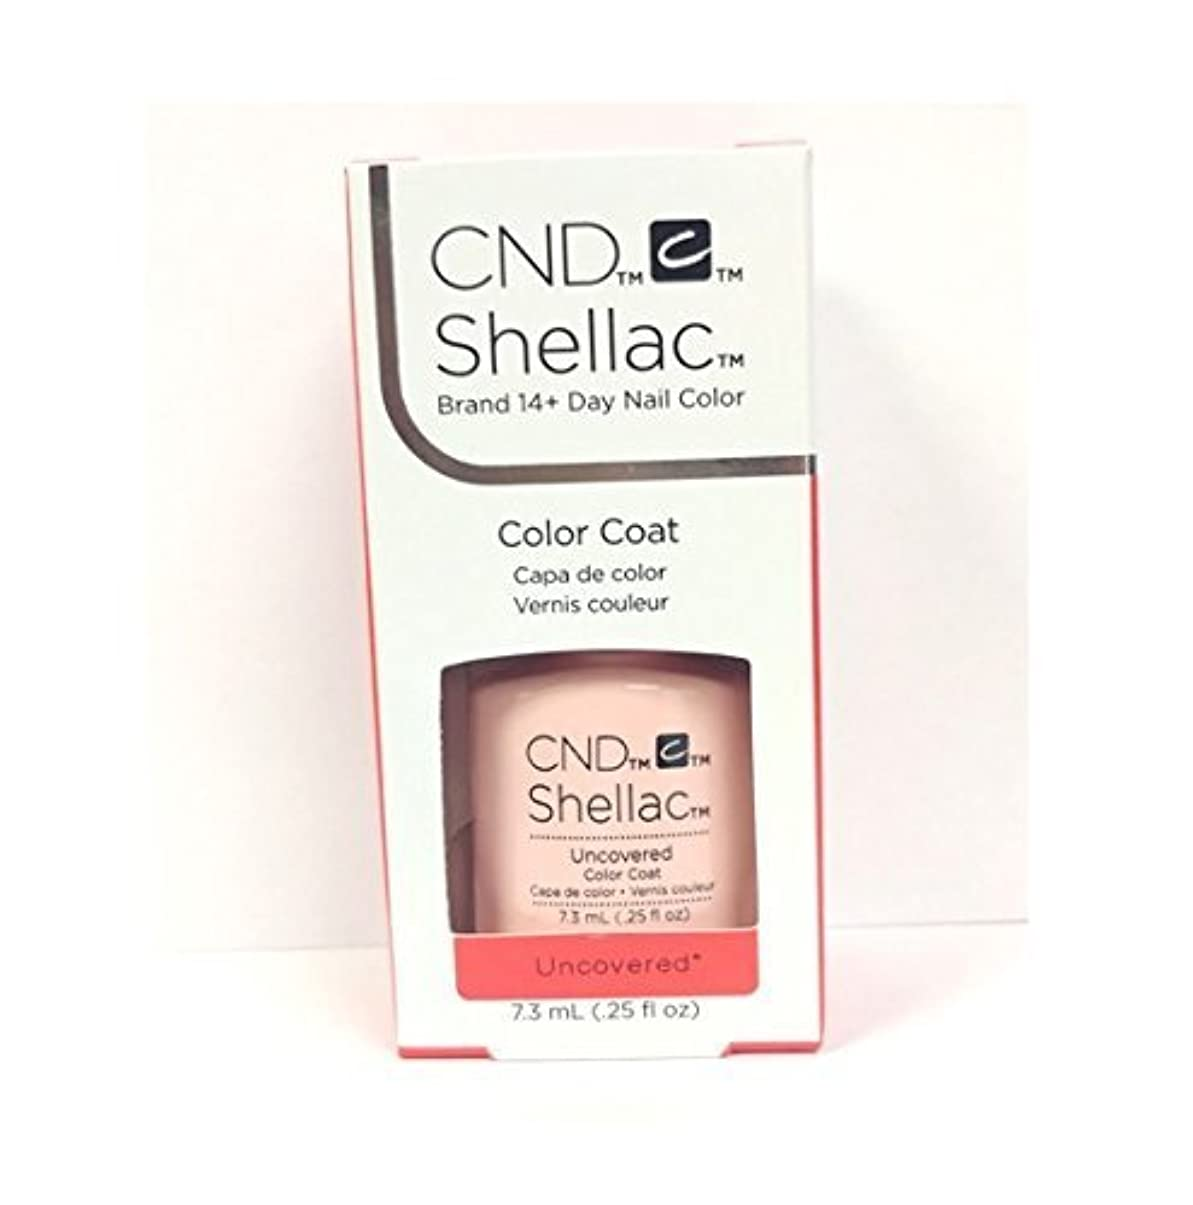 CND Shellac - The Nude Collection 2017 - Uncovered - 7.3 mL / 0.25 oz